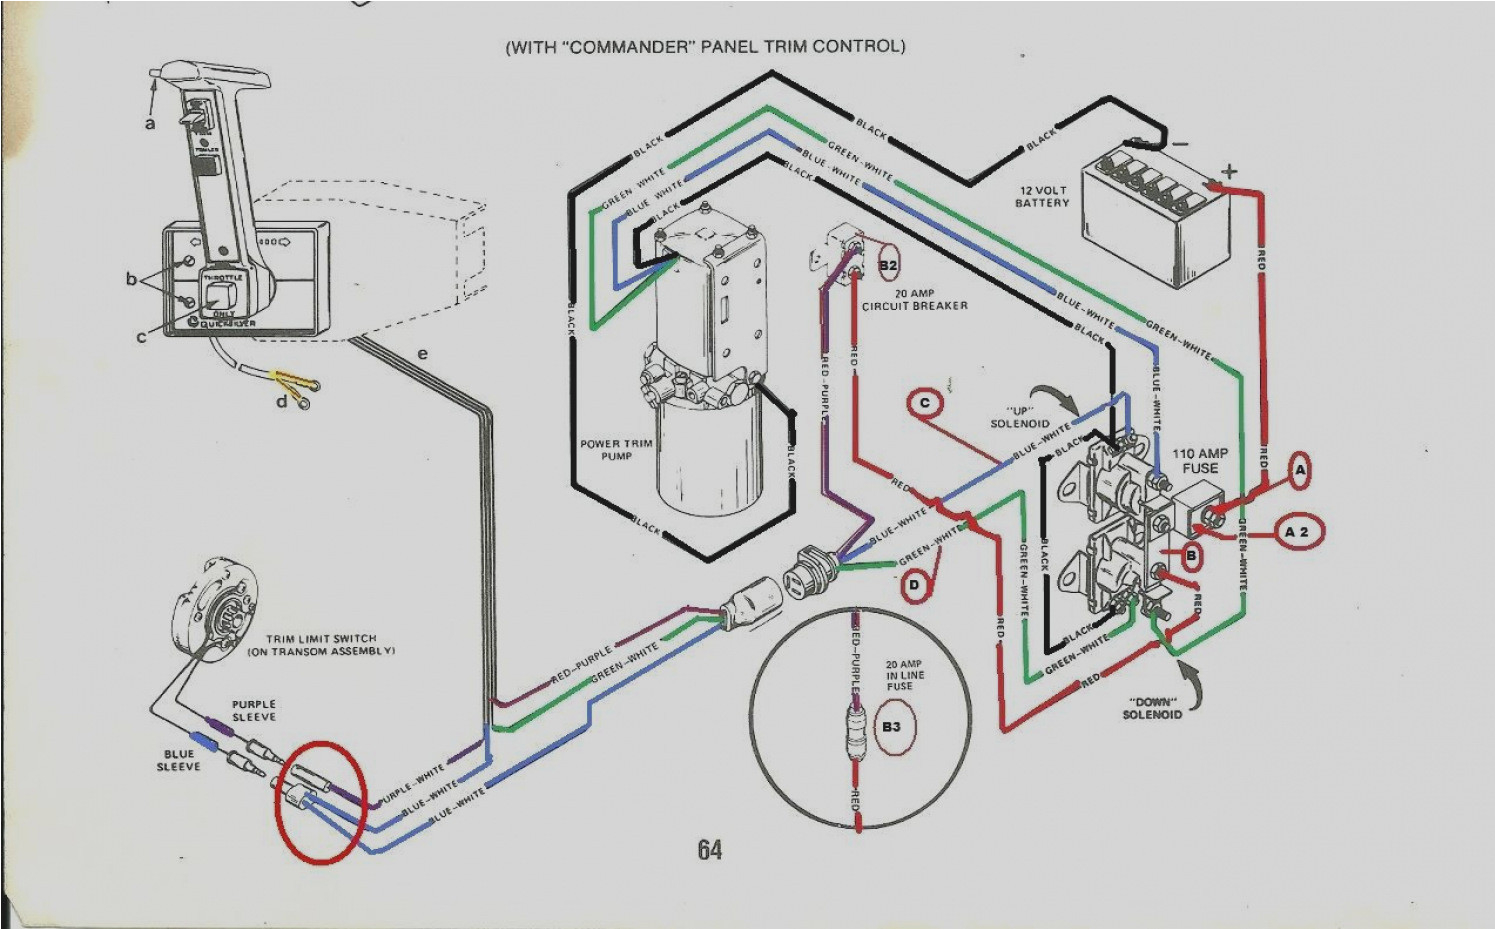 melex battery wiring diagram wiring diagrams 36 volt melex wiring diagram wiring diagrams ezgo 36 volt